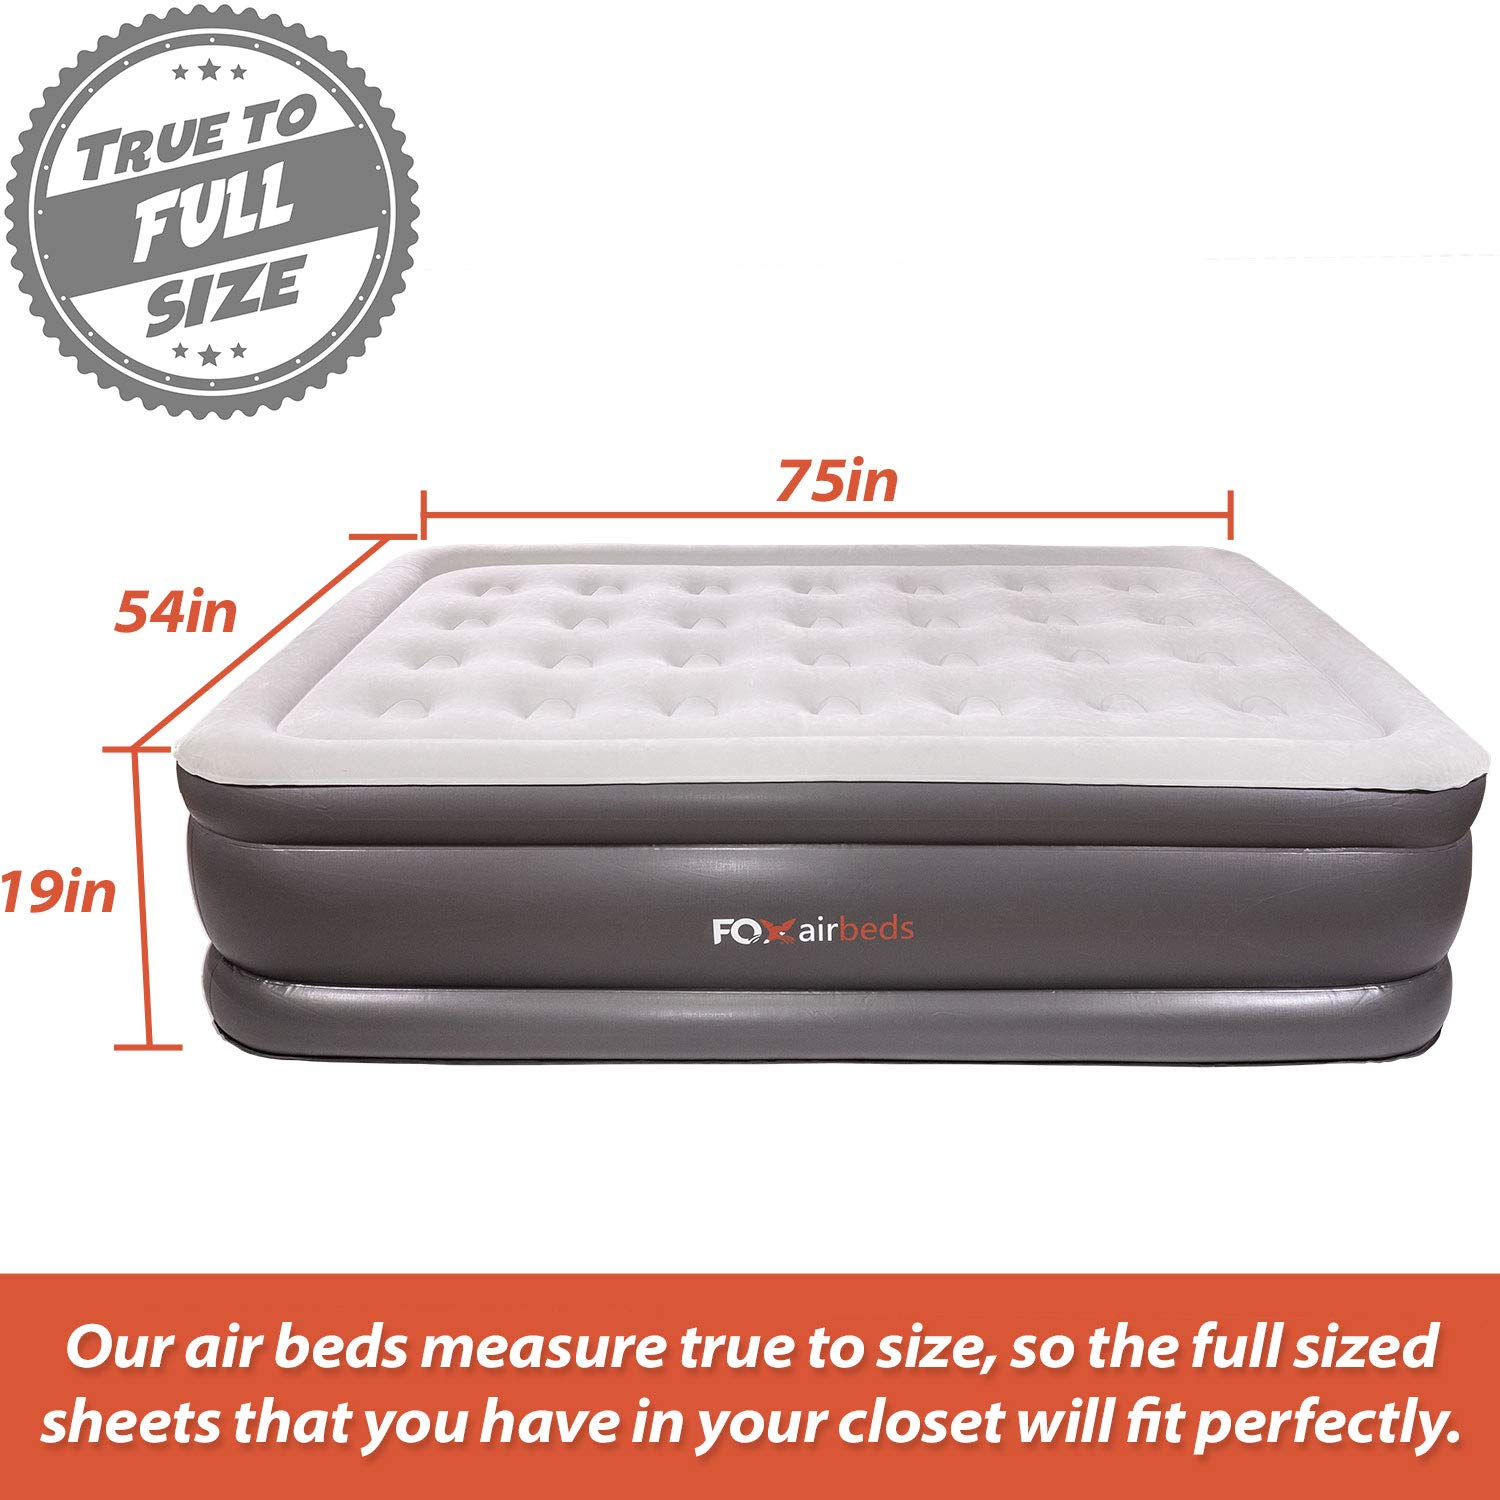 Best Inflatable Bed By Fox Airbeds - Plush High Rise Air Mattress in King, Queen, Full and Twin (Full) by Fox Air Beds (Image #2)